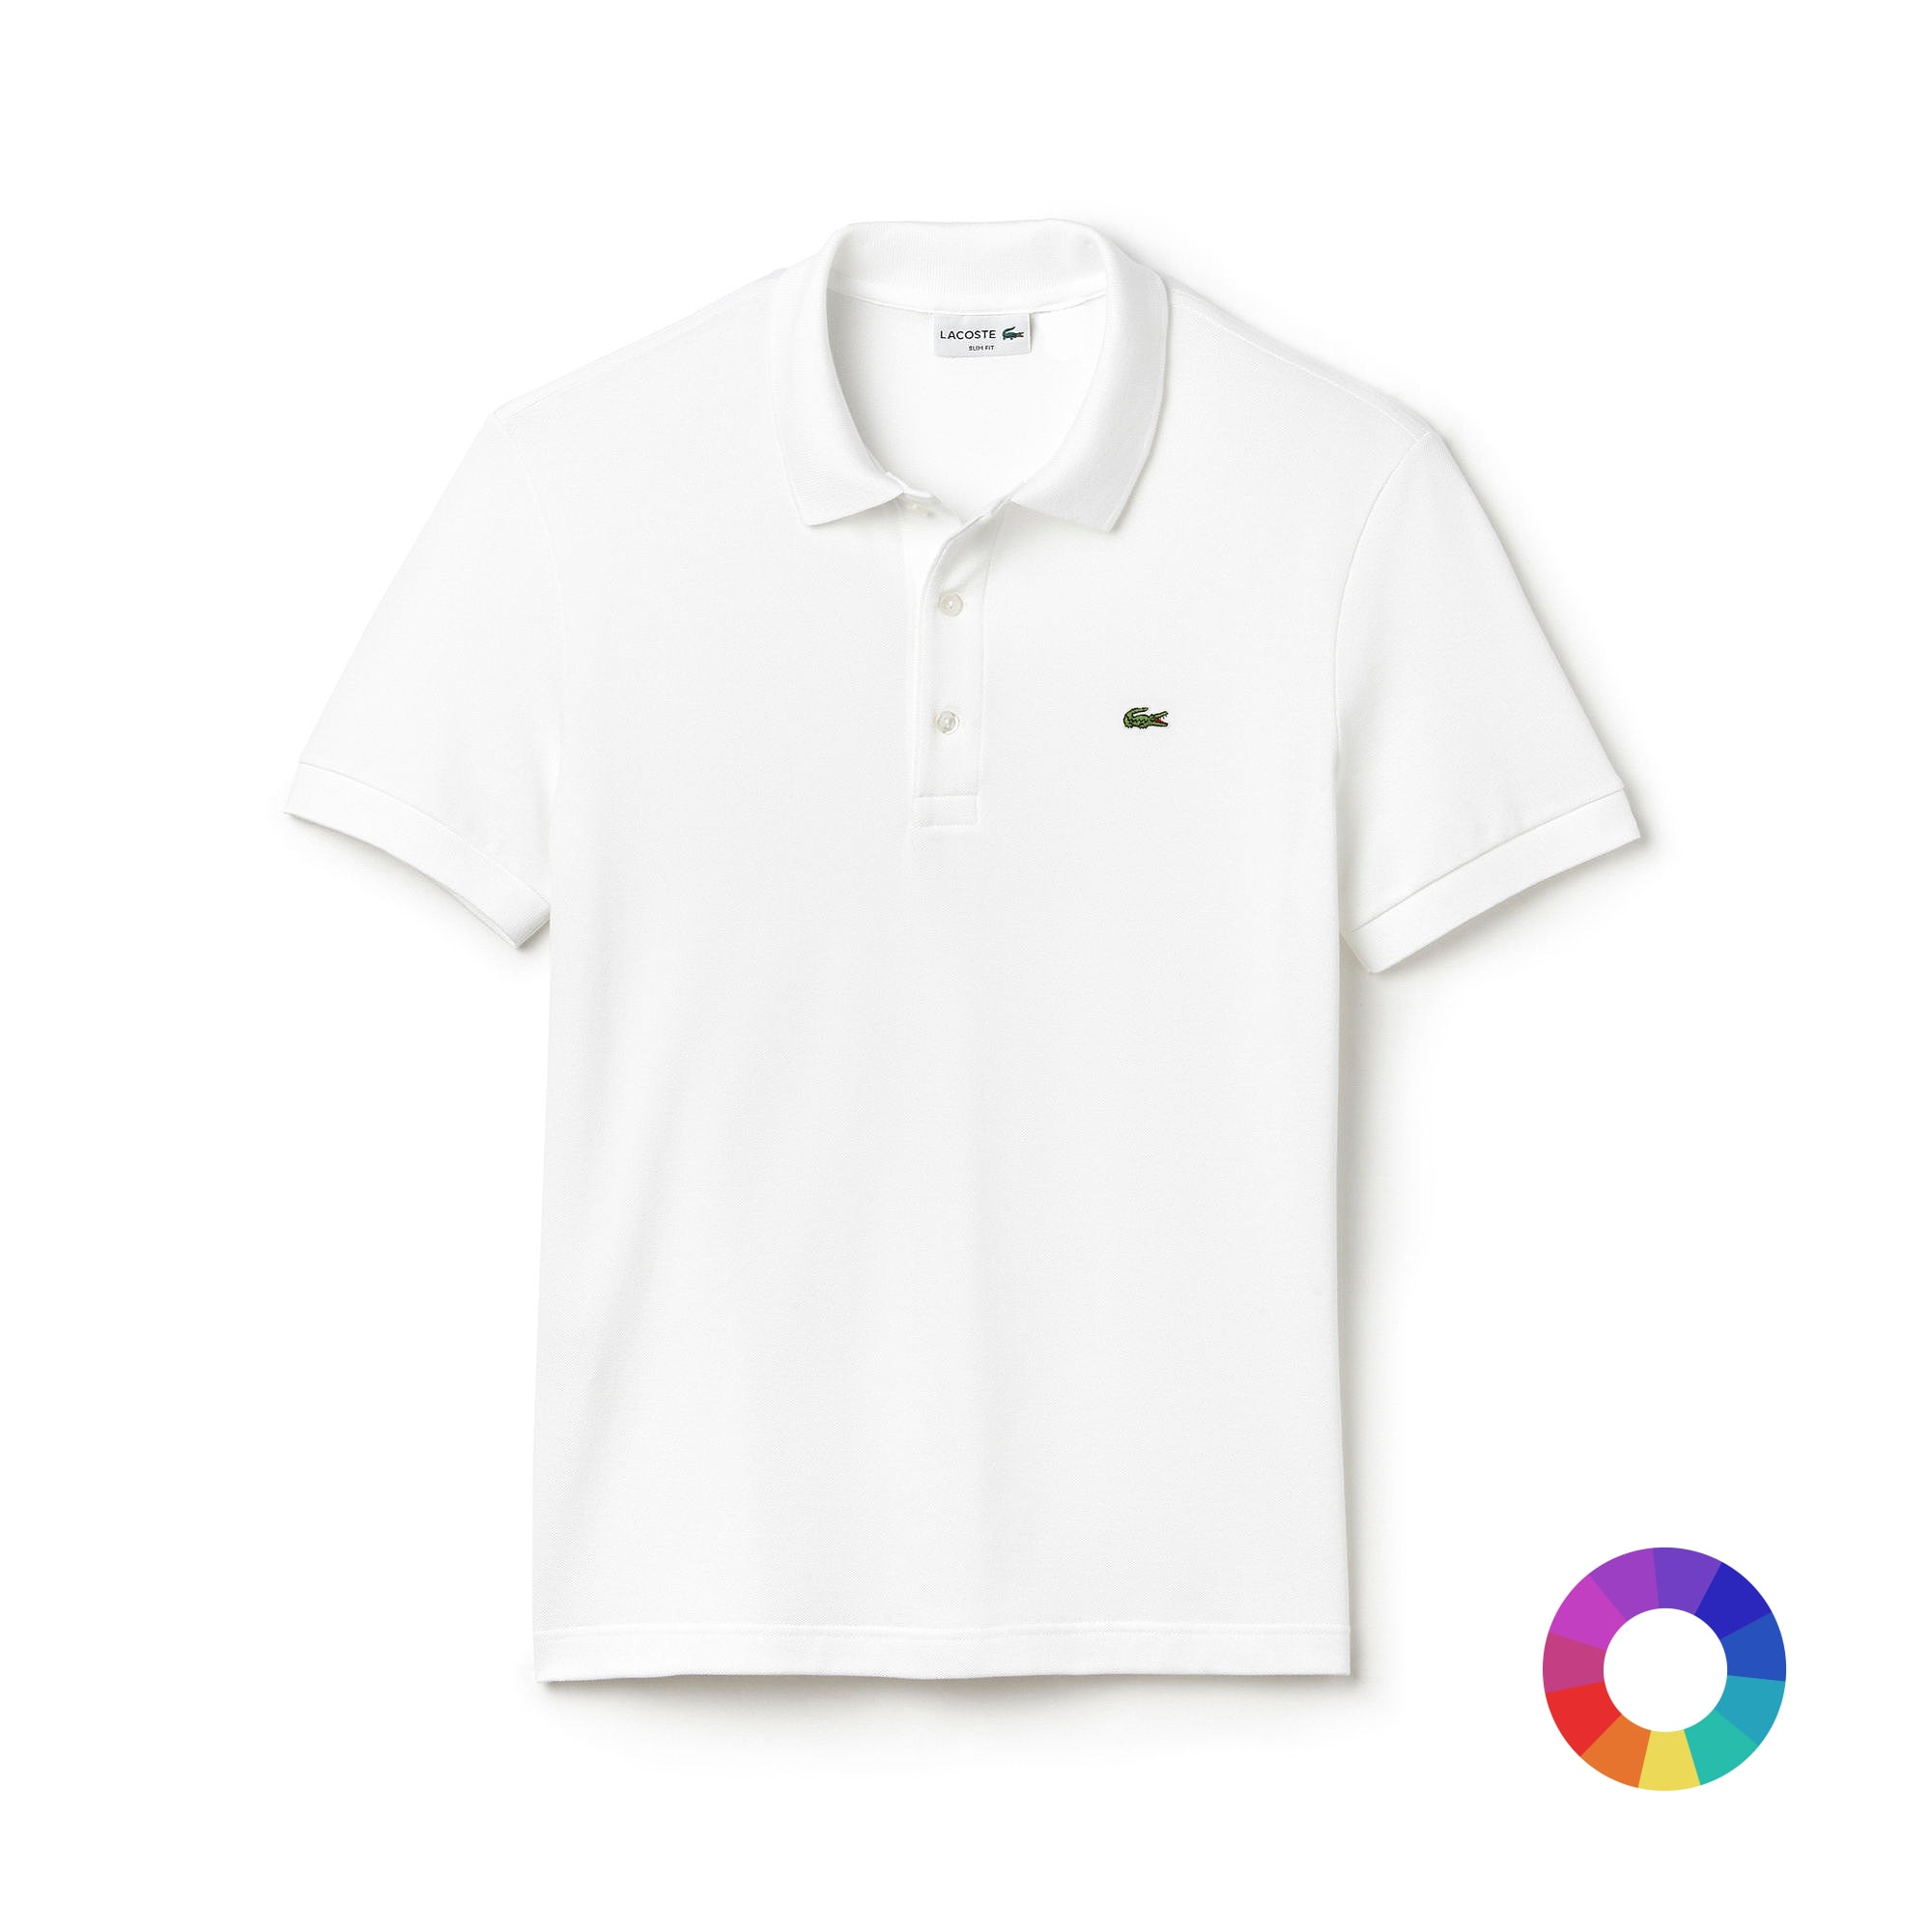 Customized L.12.12 Lacoste Polo